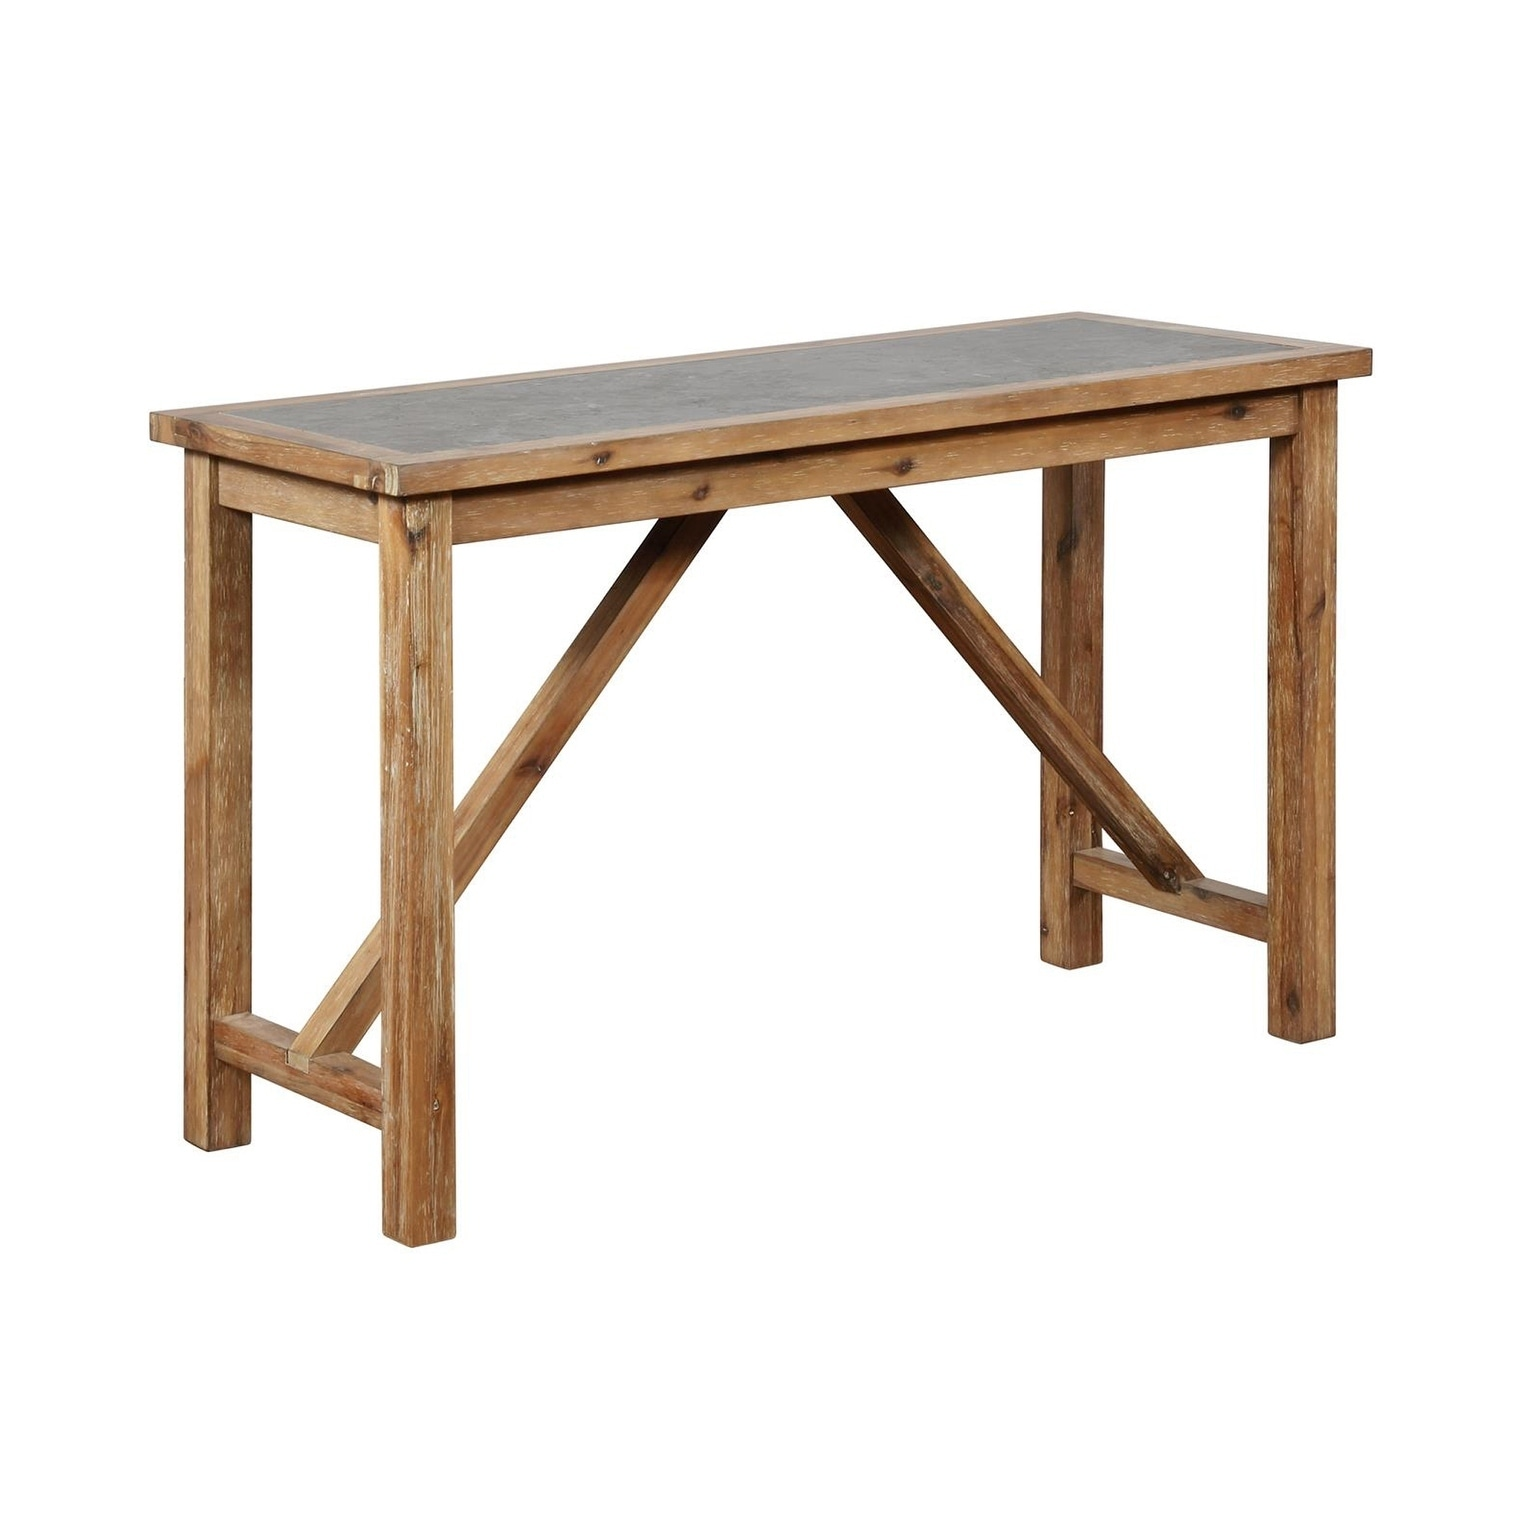 Wood and Metal Console Table with Block Legs, Brown and Gray